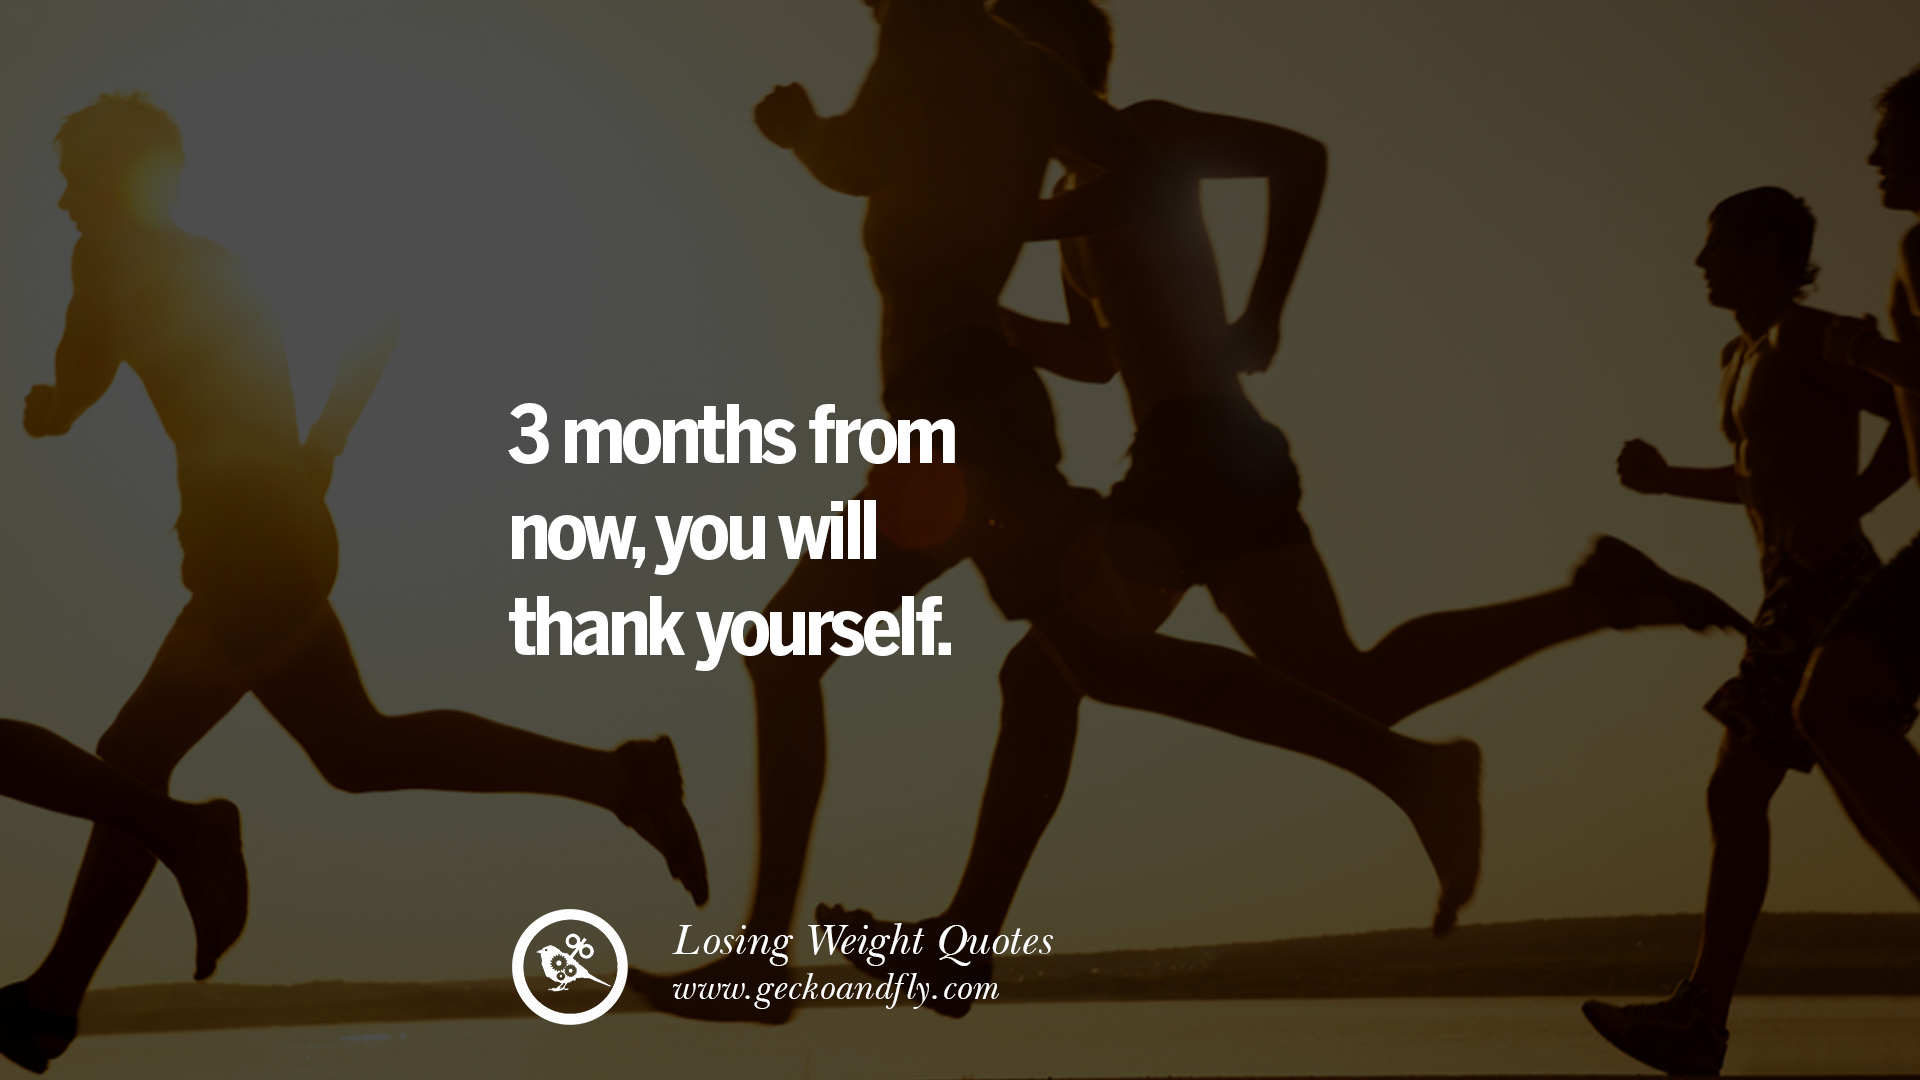 Losing Weight Diet Quotes